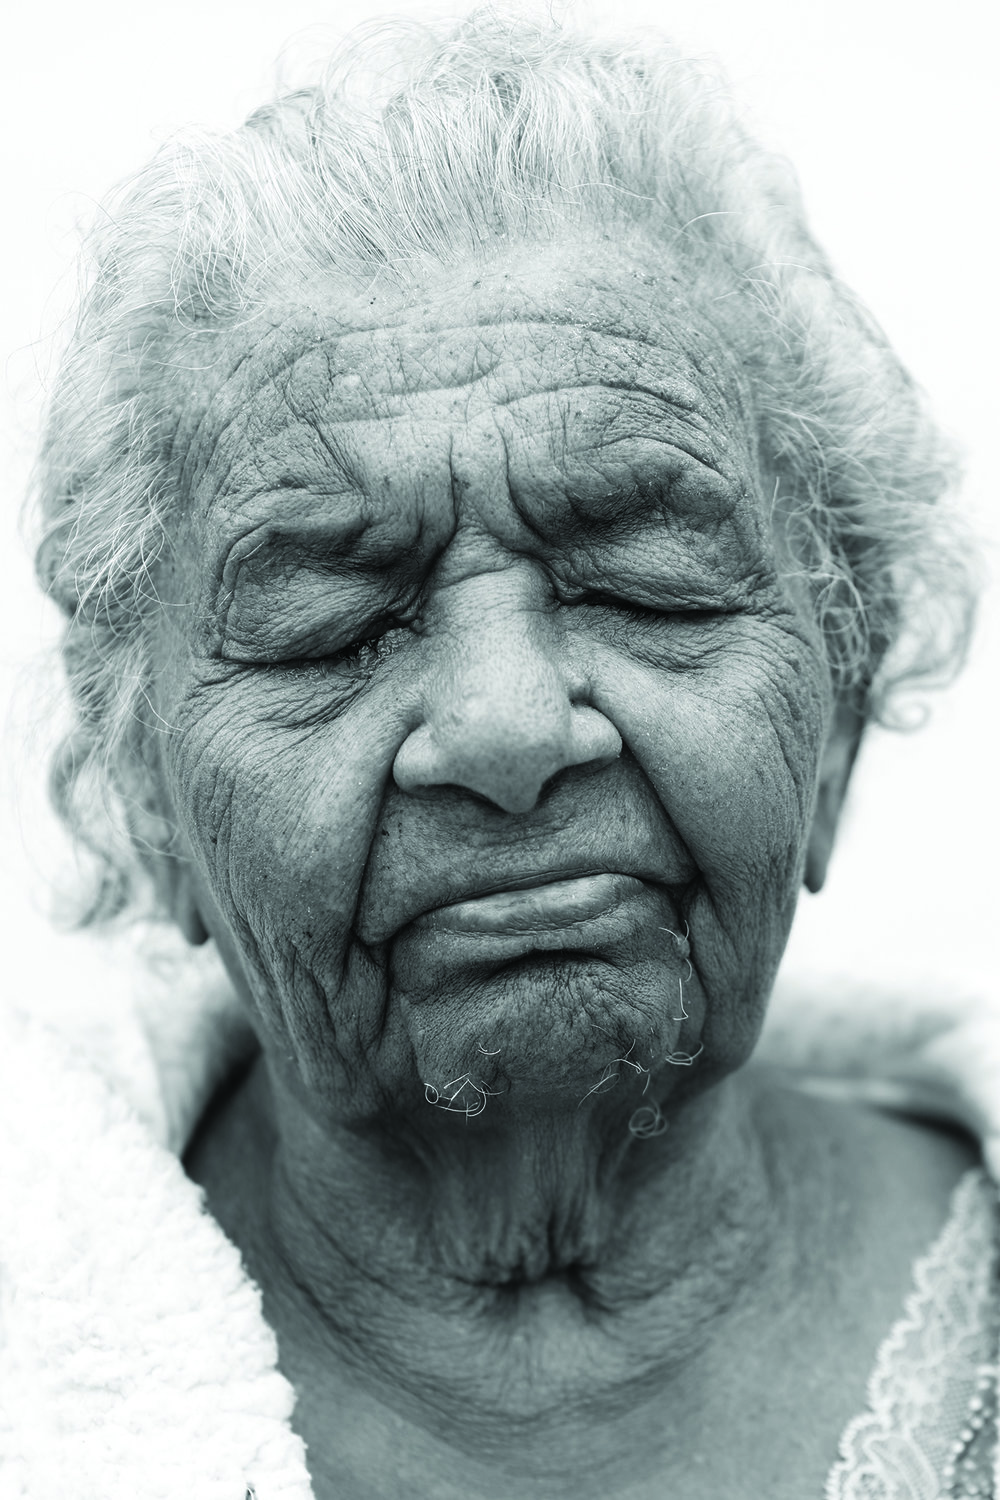 Aunty Margaret, from the Darumbal people of central Queensland. This portrait was taken as part of the exhibition Toonoonba Dreaming.